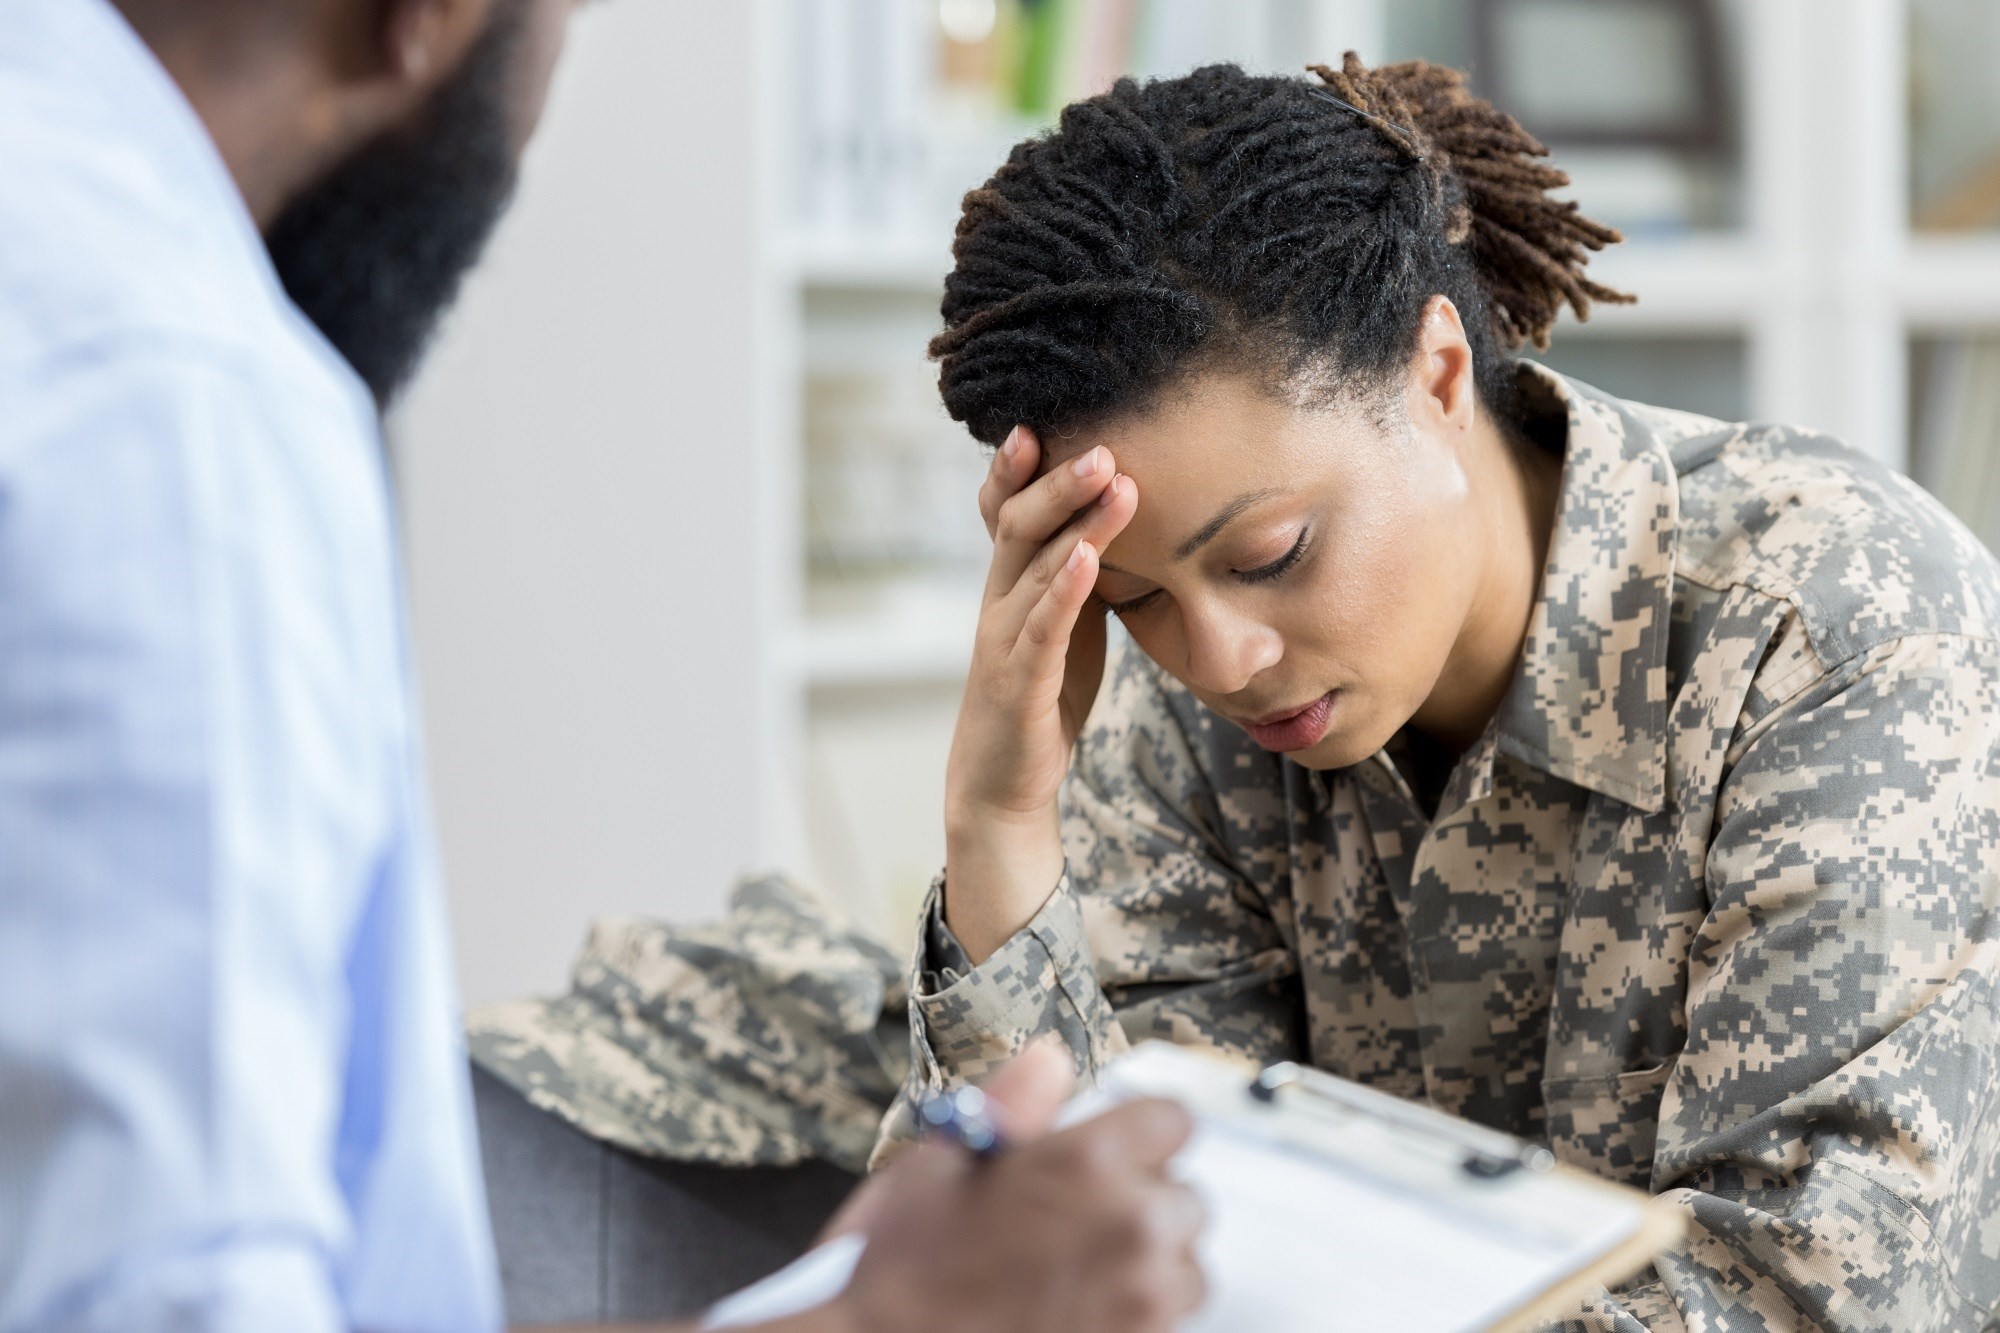 Dementia Risk Up in Women With Military-Linked Risk Factors